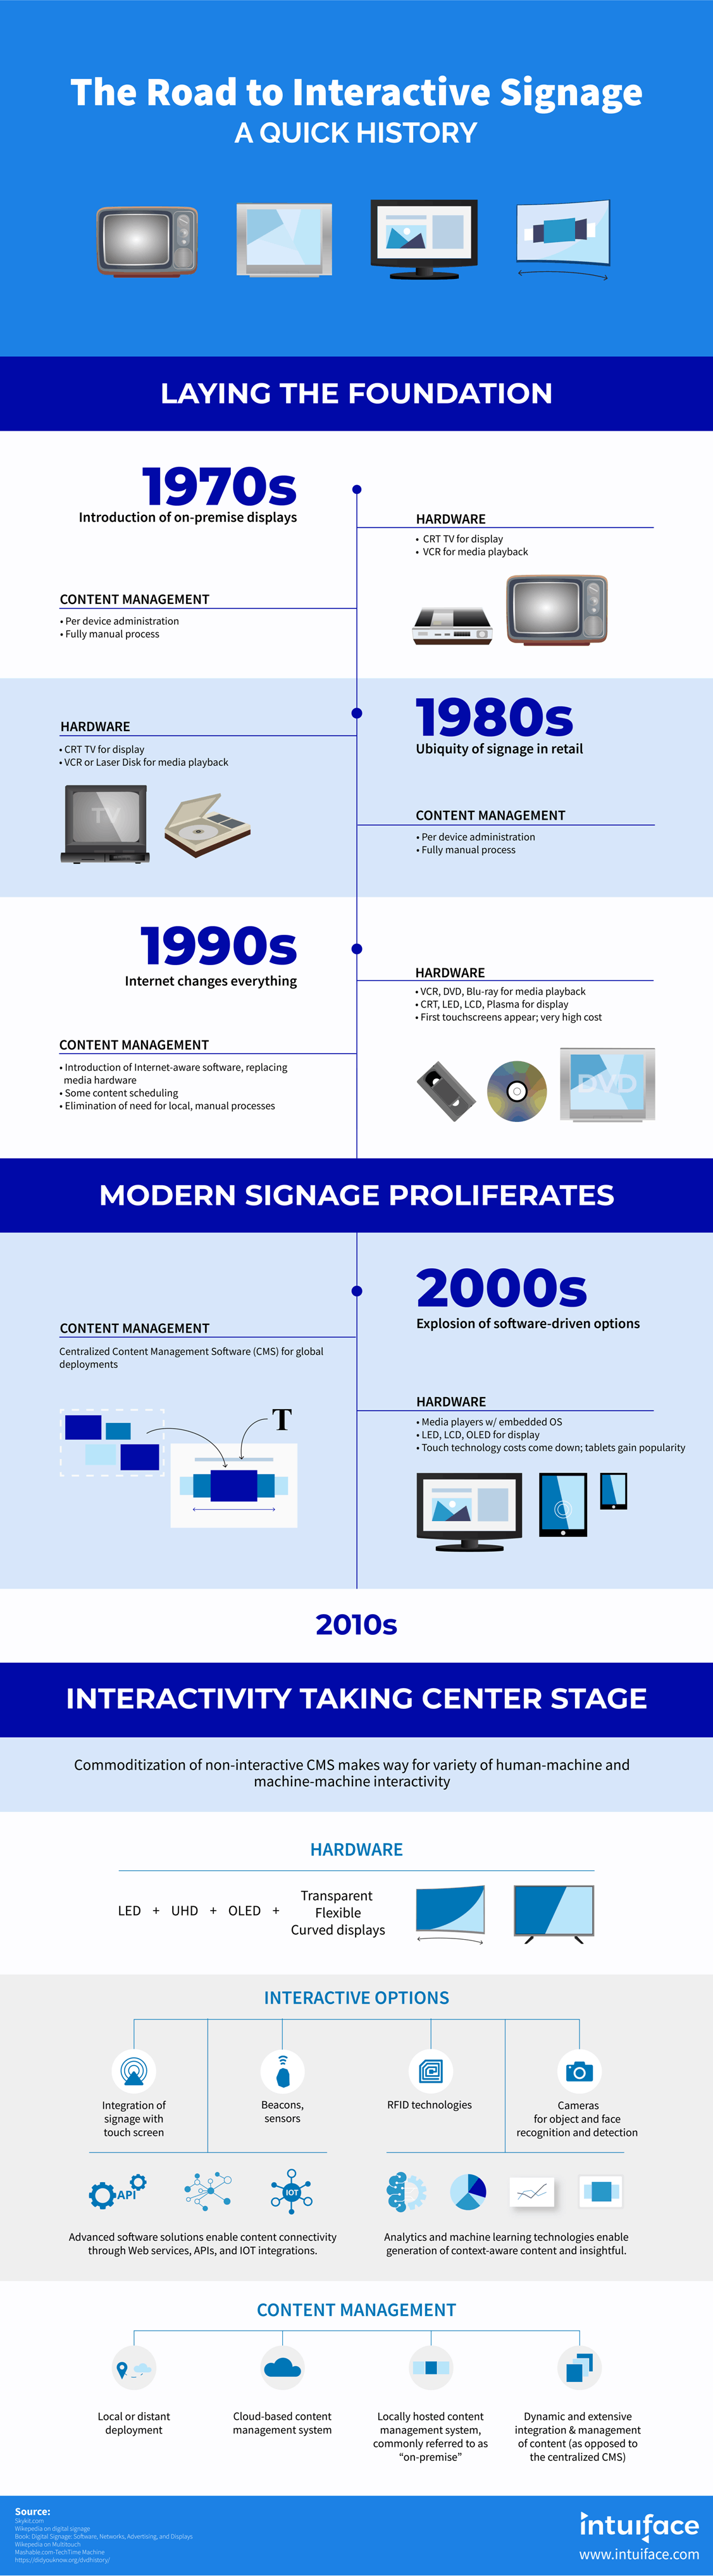 The Road to Interactive Signage - A Quick History